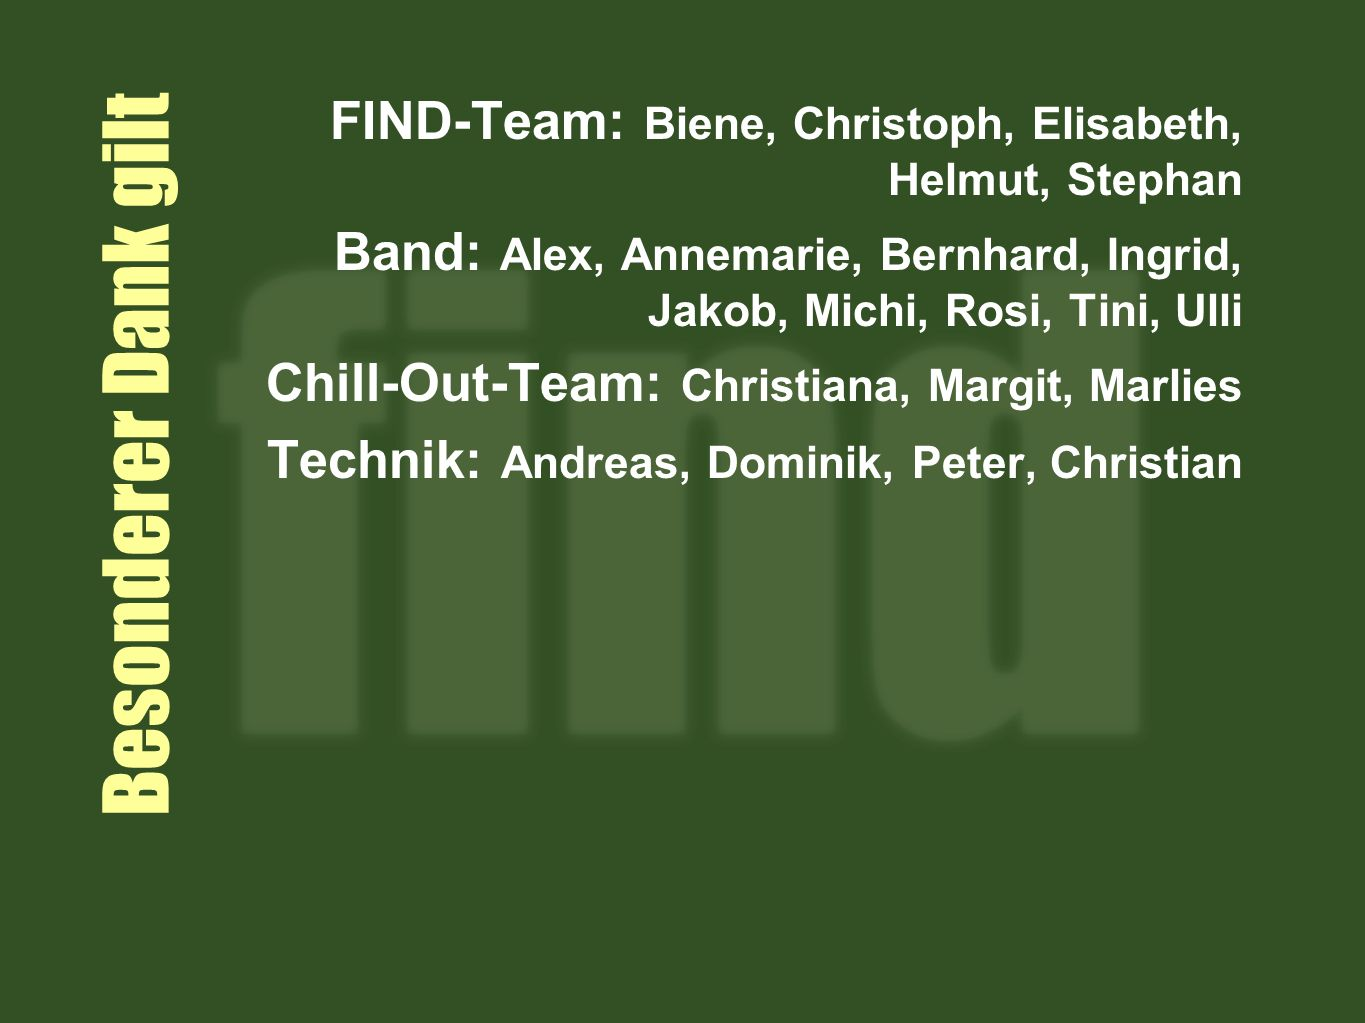 FIND-Team: Biene, Christoph, Elisabeth, Helmut, Stephan